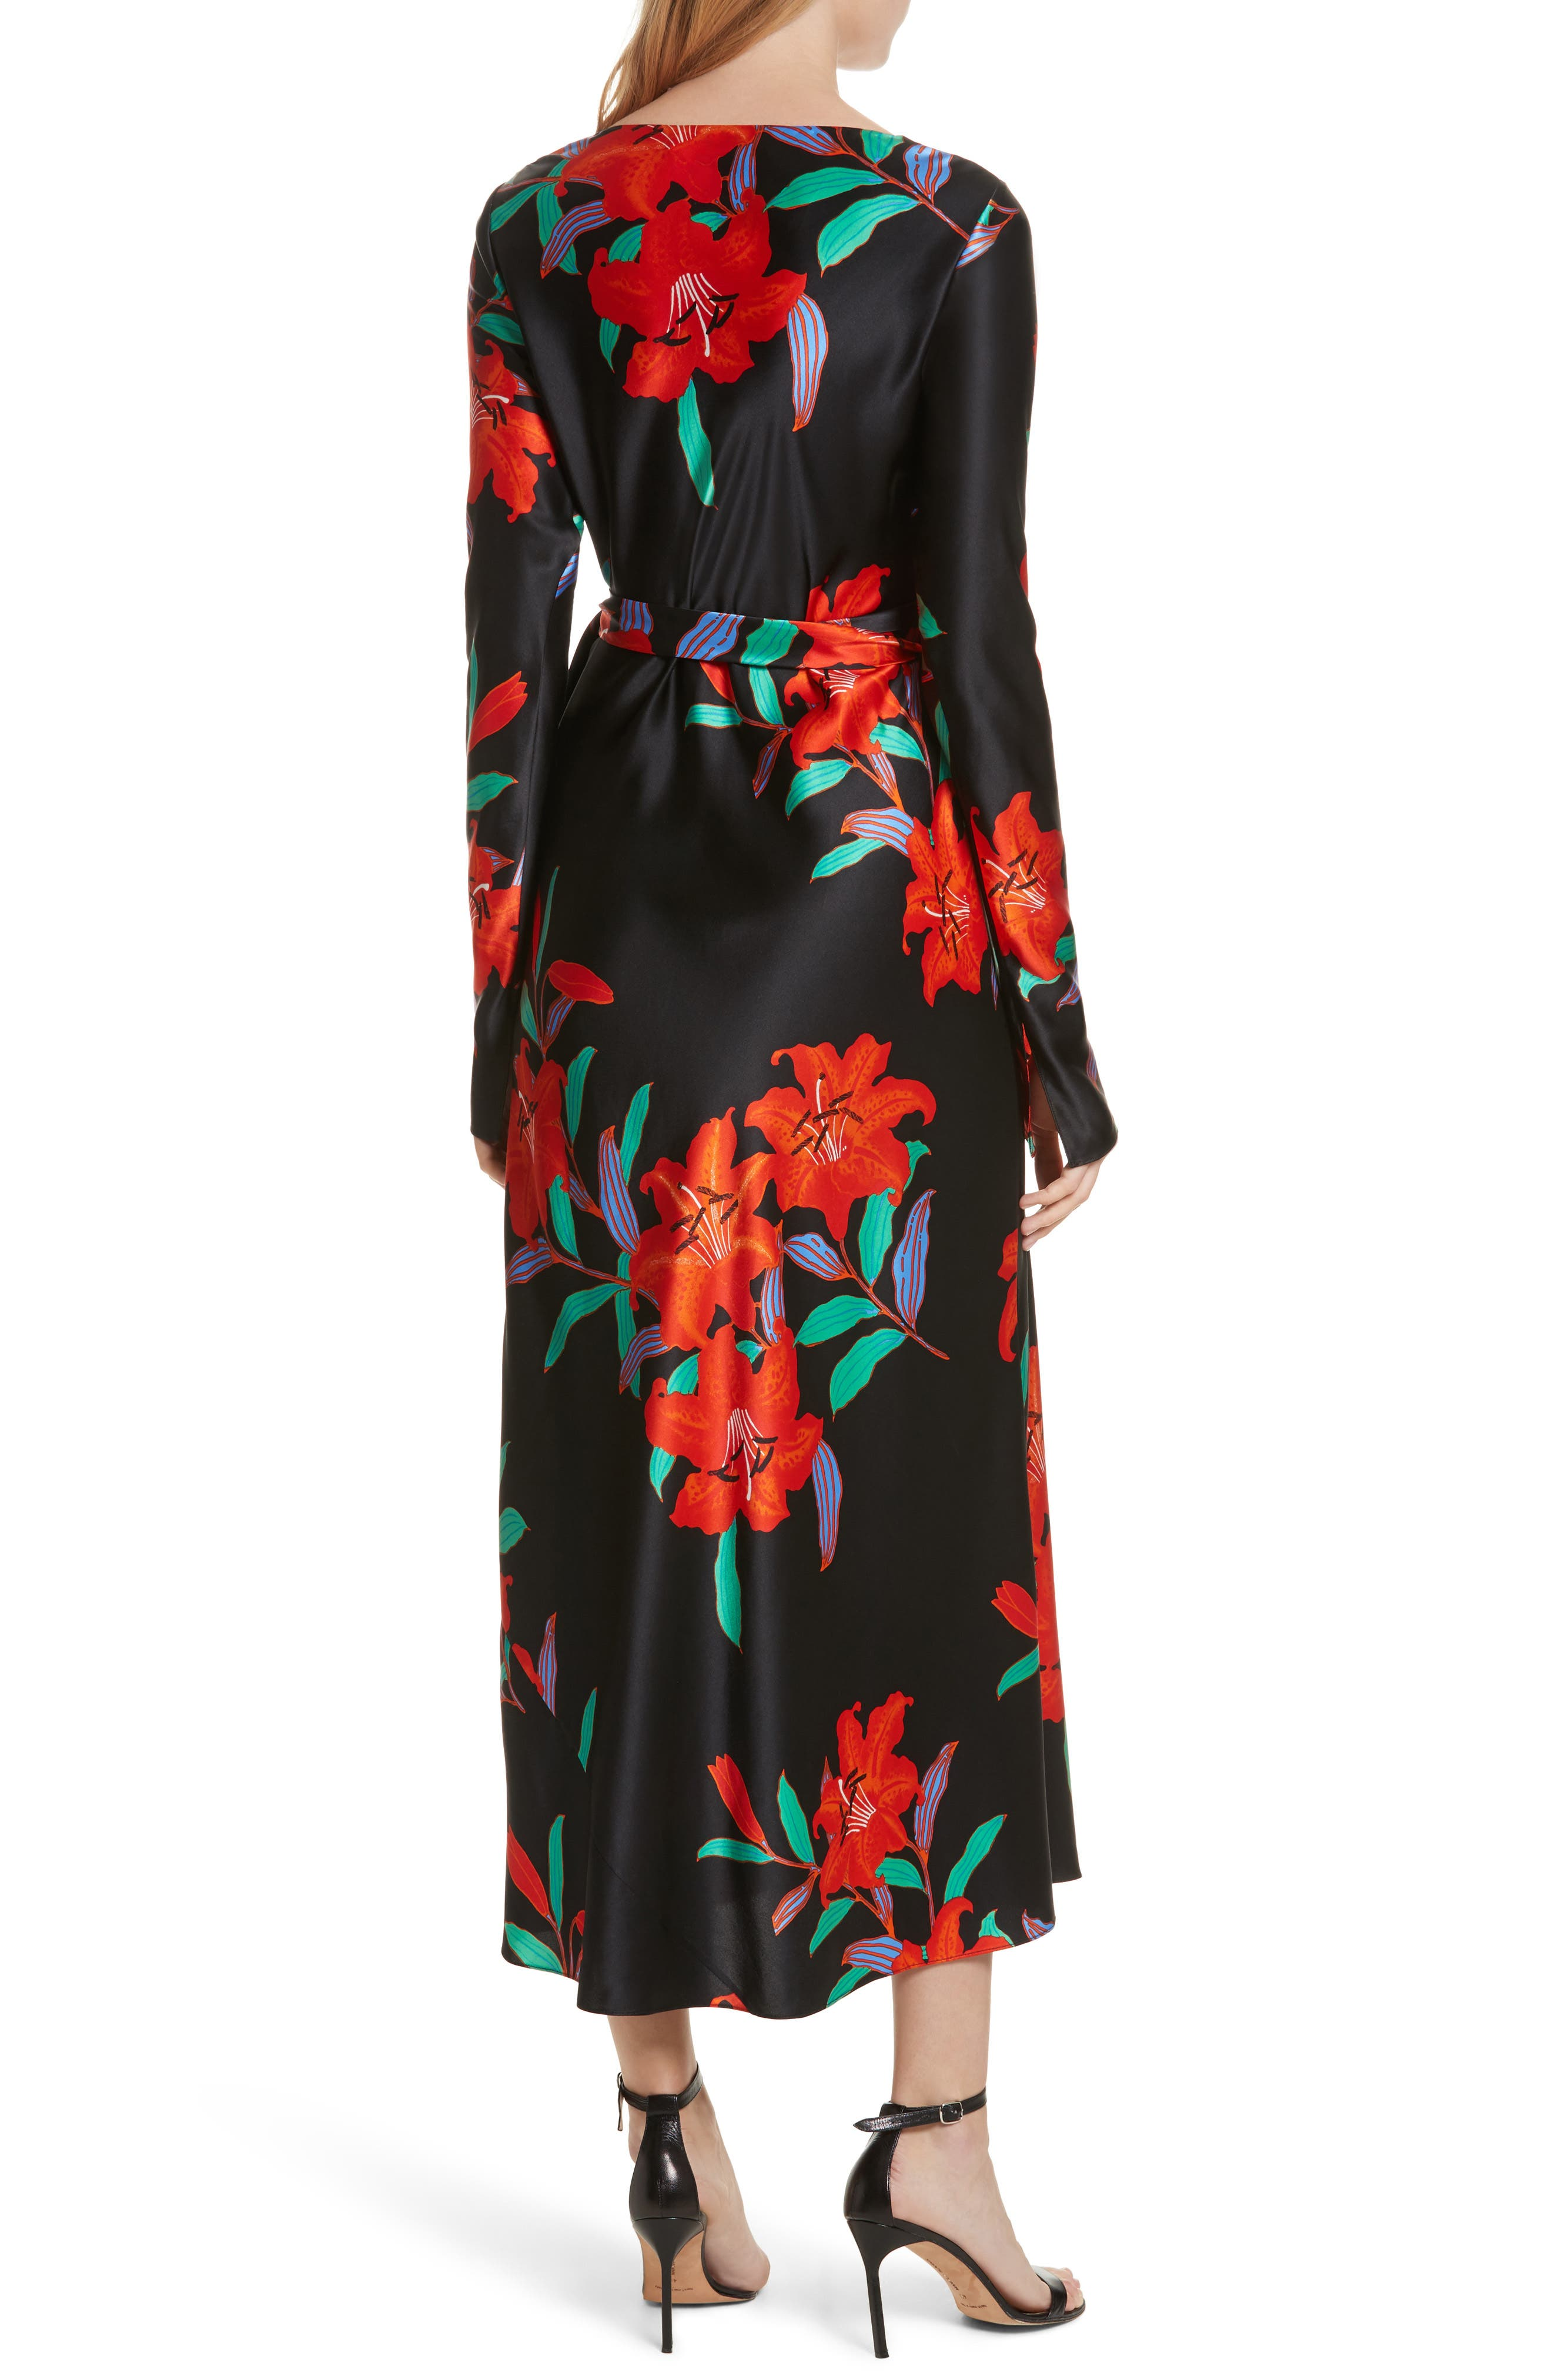 Diane von Furstenberg Floral Print Wrap Silk Dress,                             Alternate thumbnail 2, color,                             001